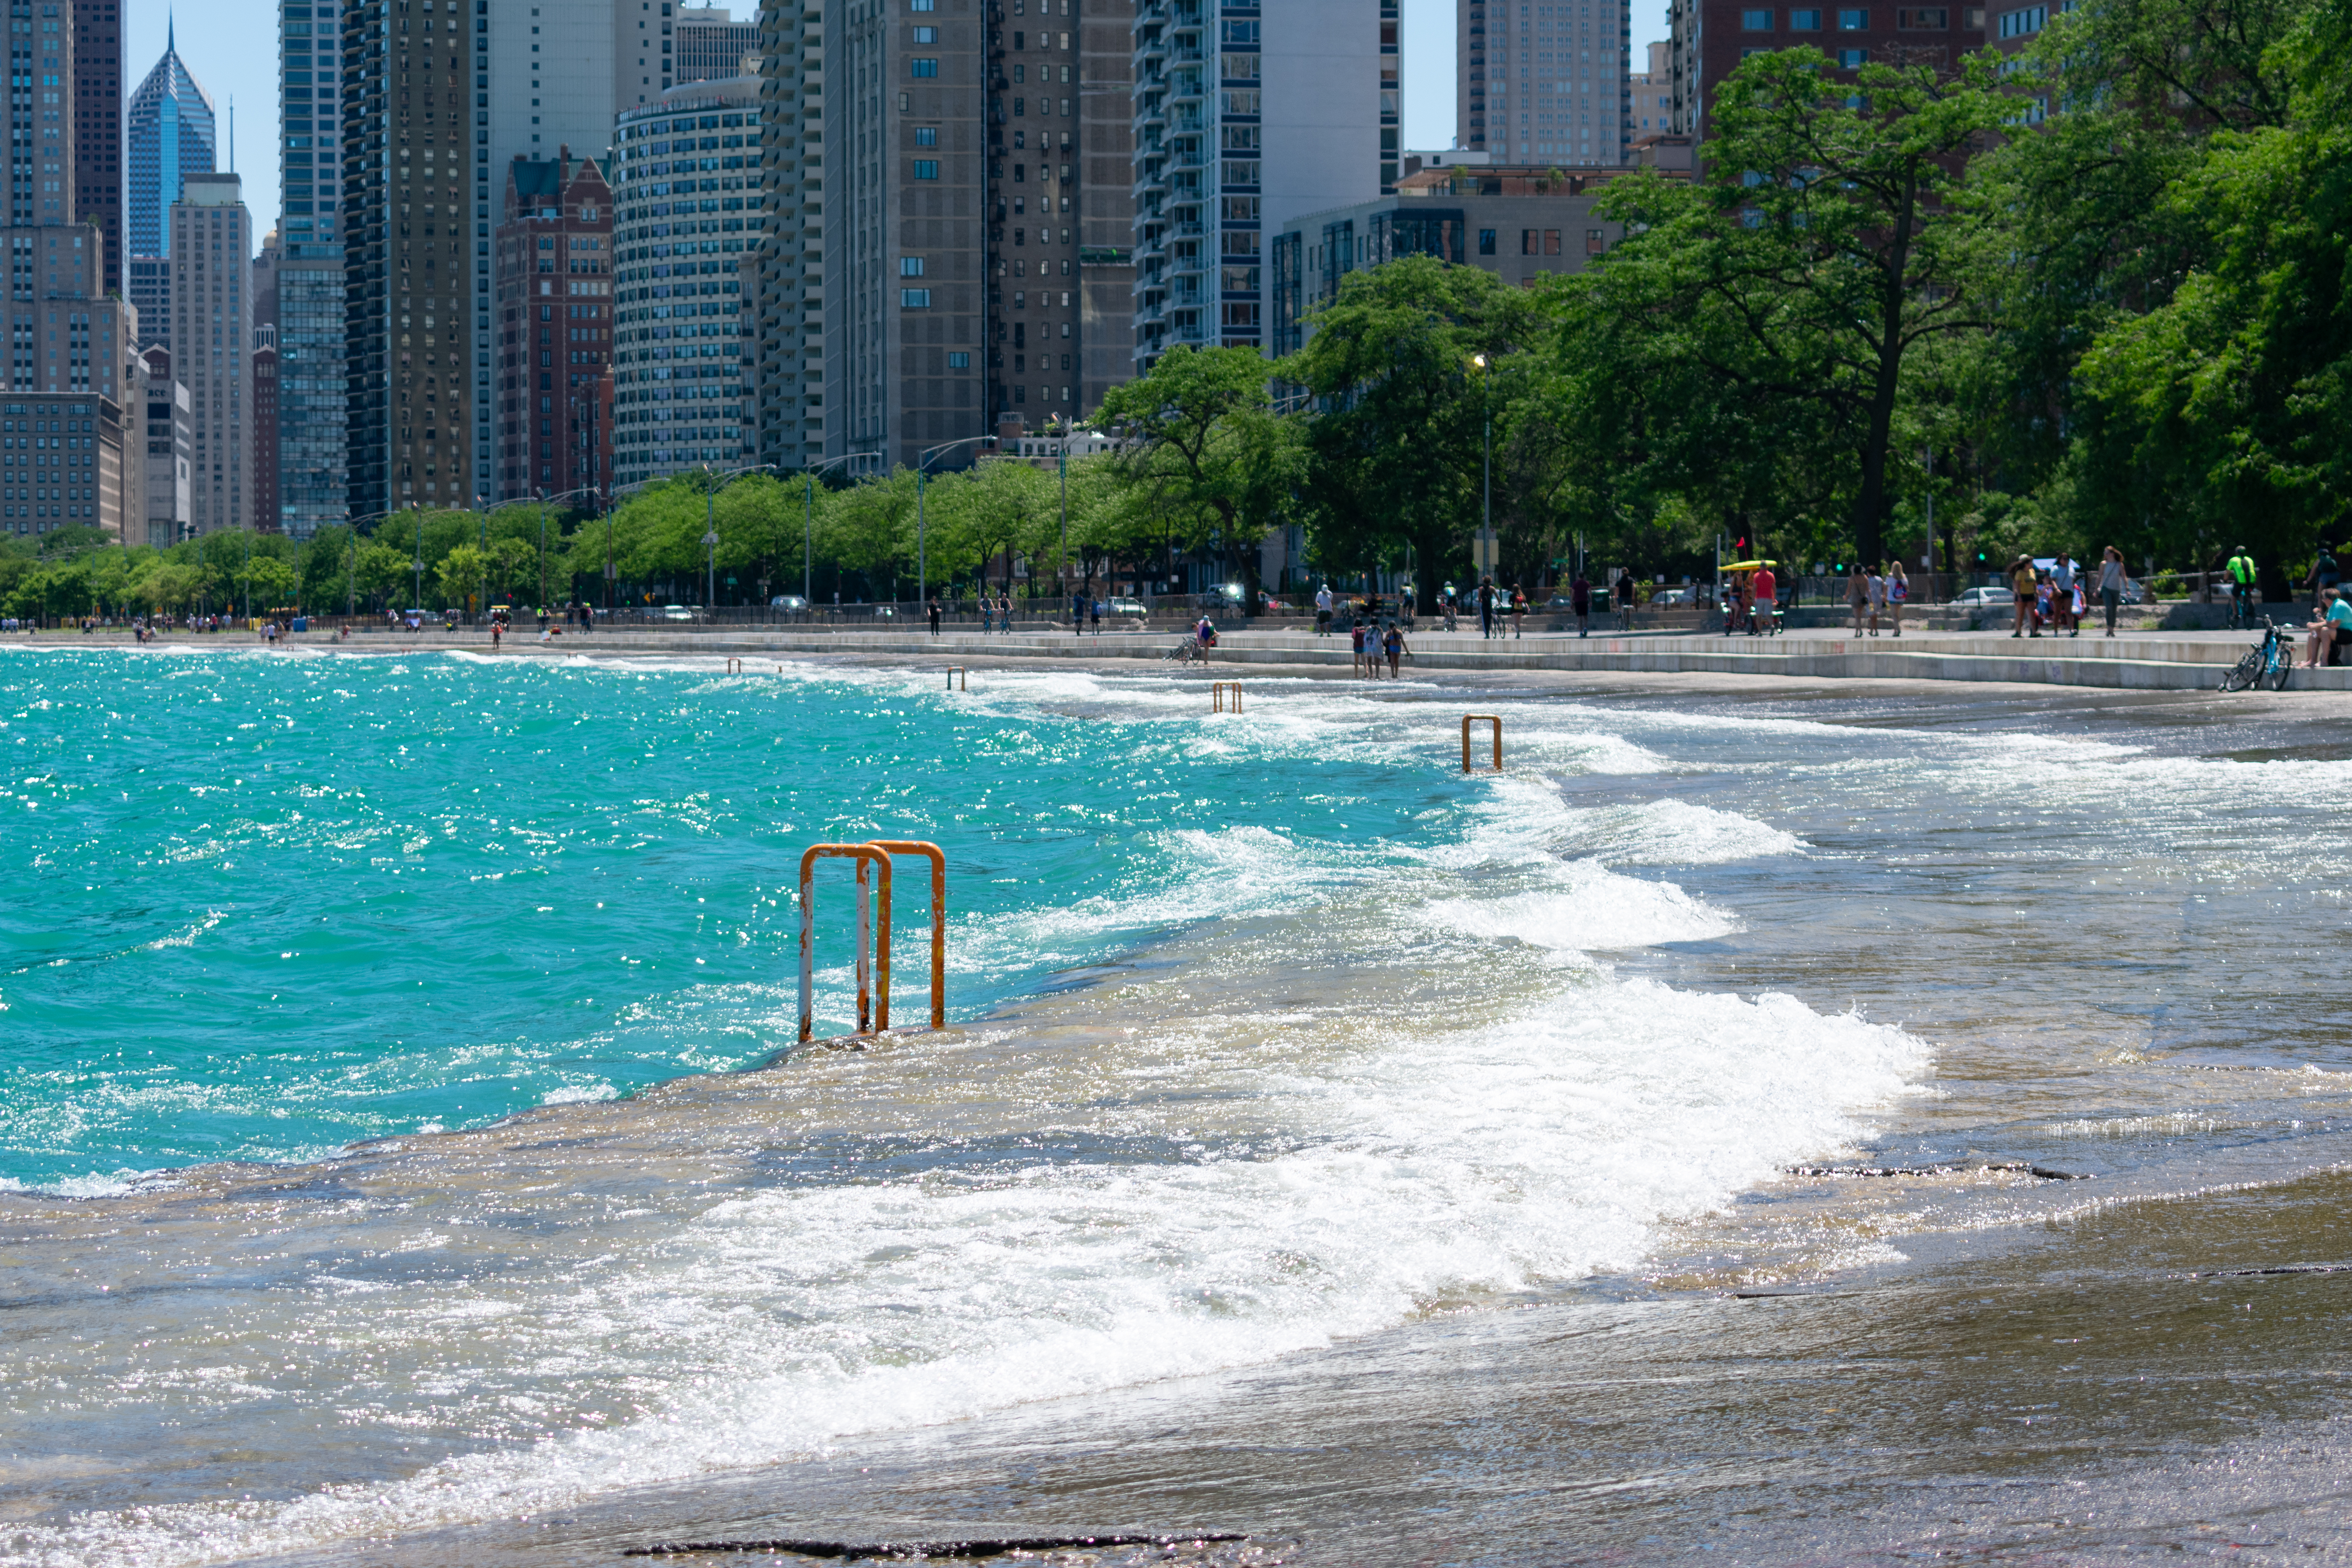 City installs barriers to protect roads, beaches, and paths from rising water levels